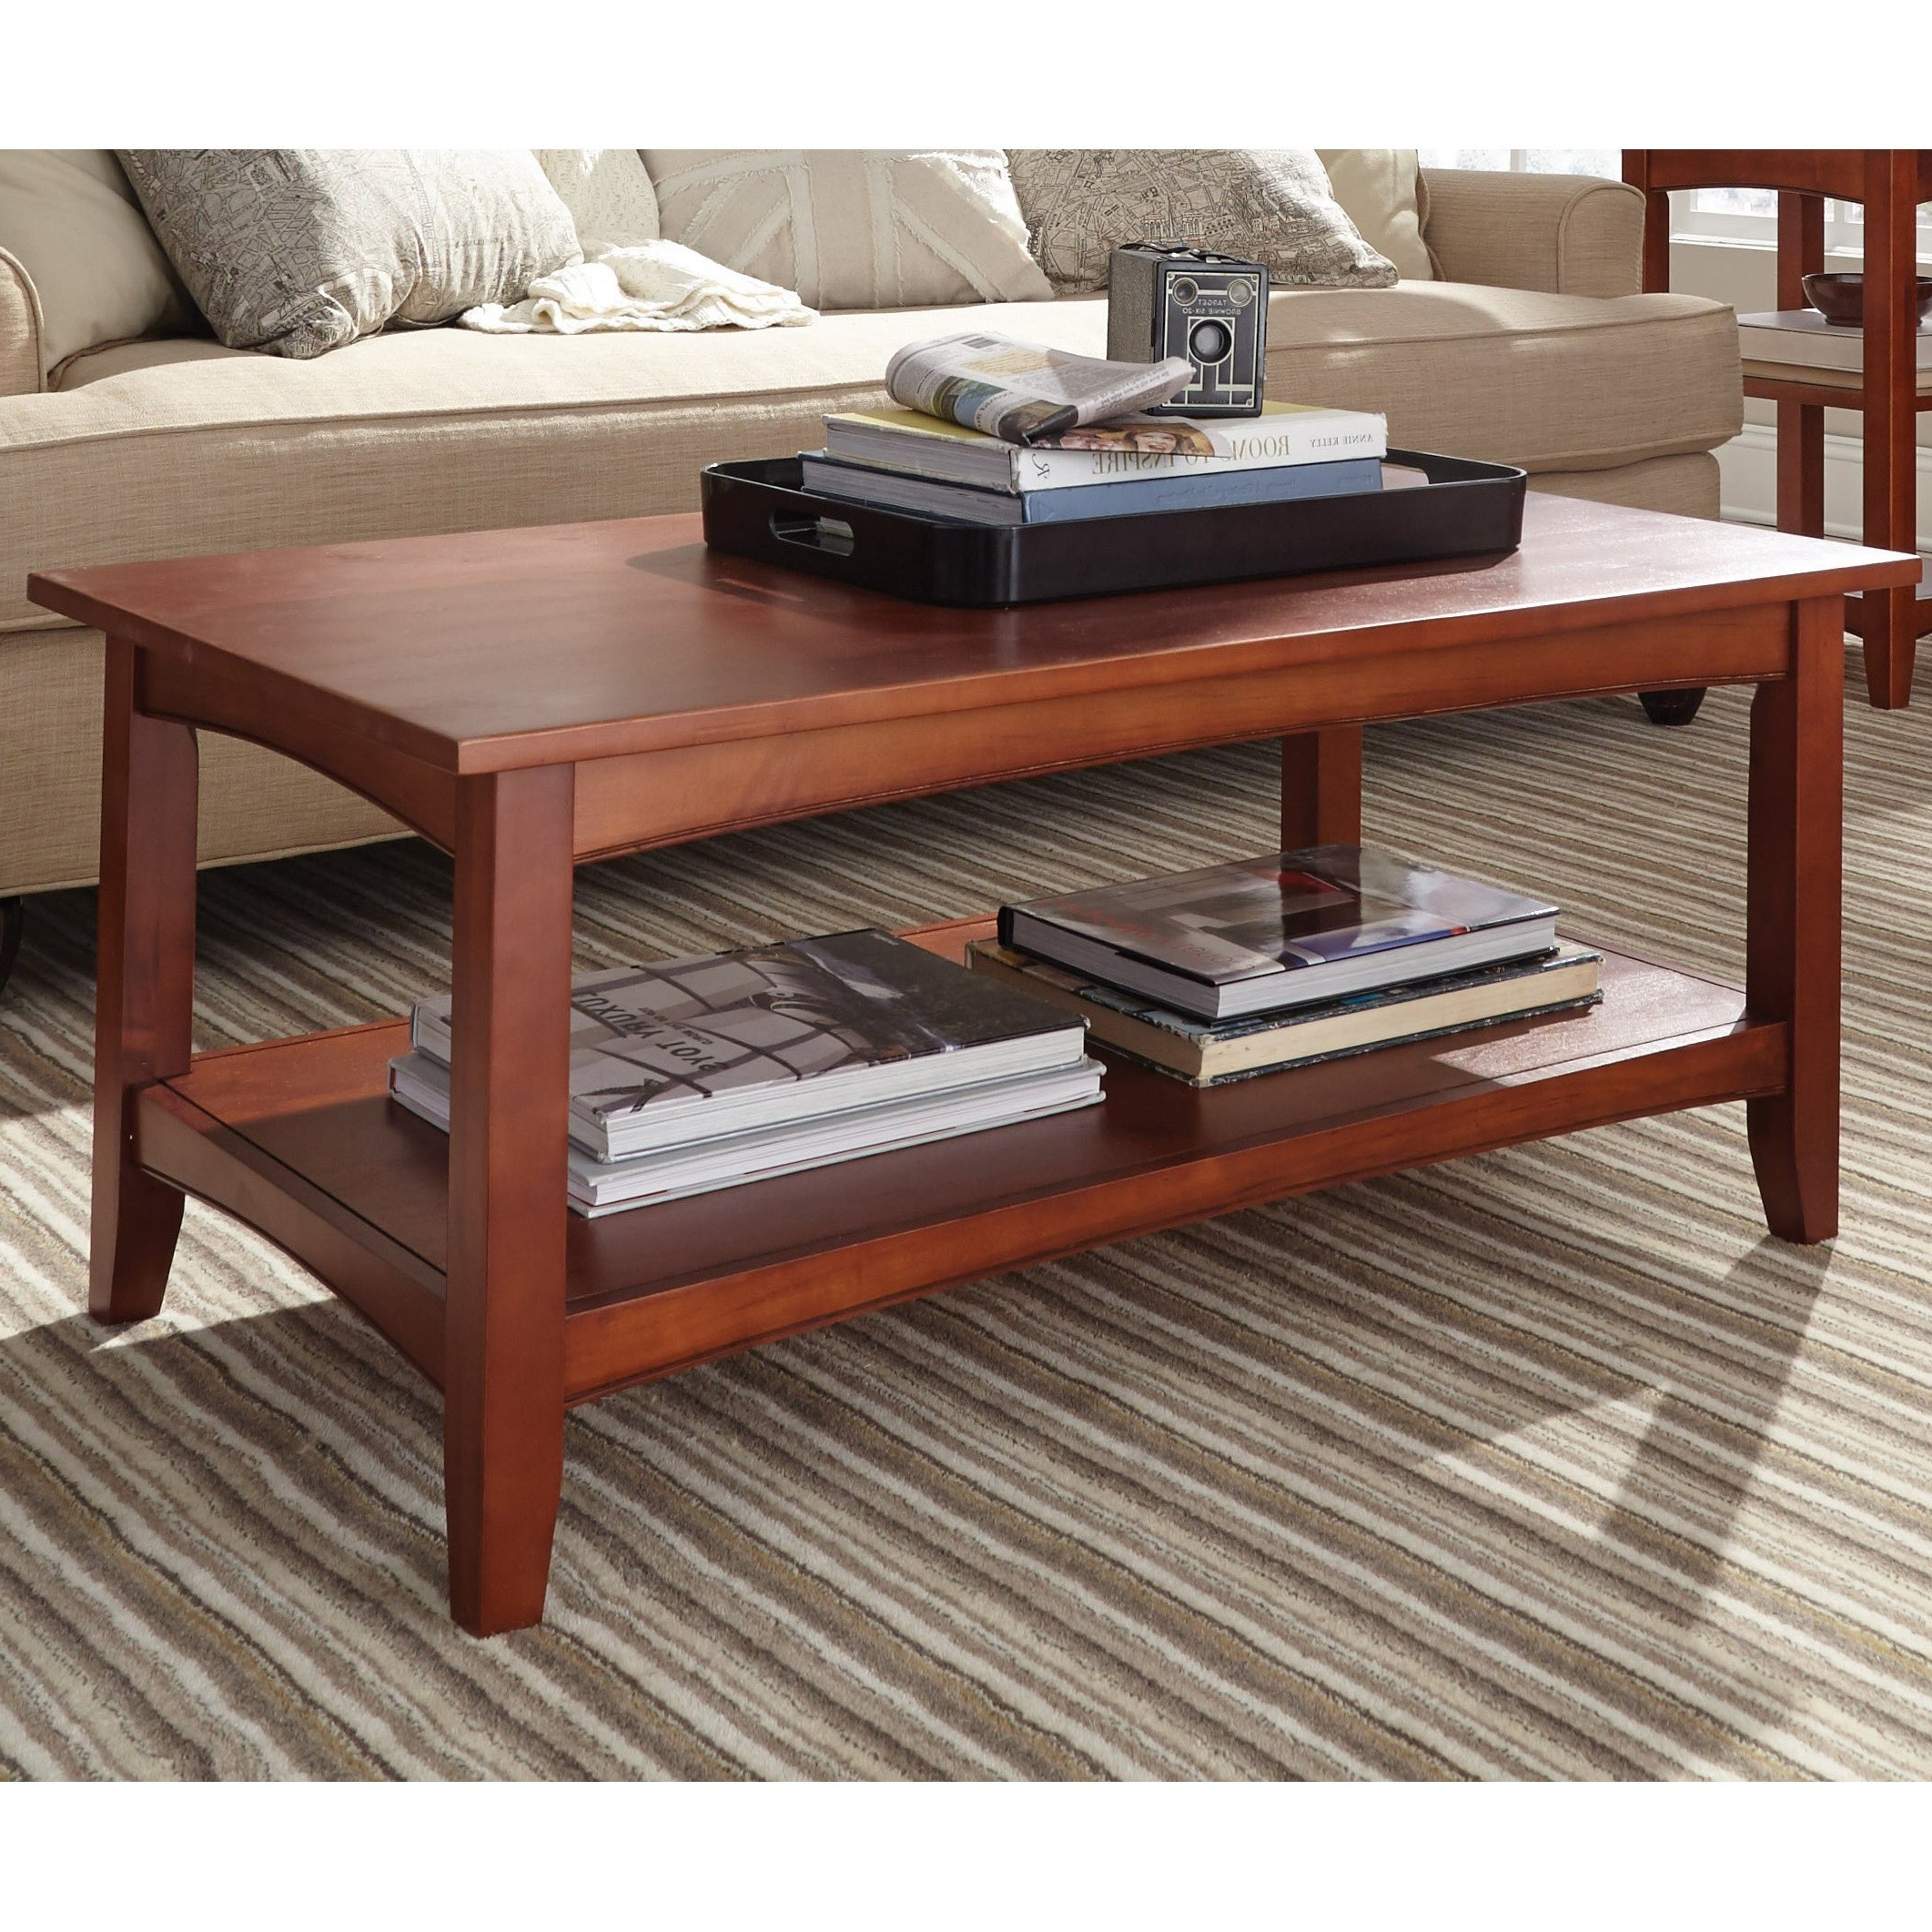 Copper Grove Coffee Tables – All About Coffee Beans Inside Fashionable Copper Grove Lantana Coffee Tables (View 2 of 20)